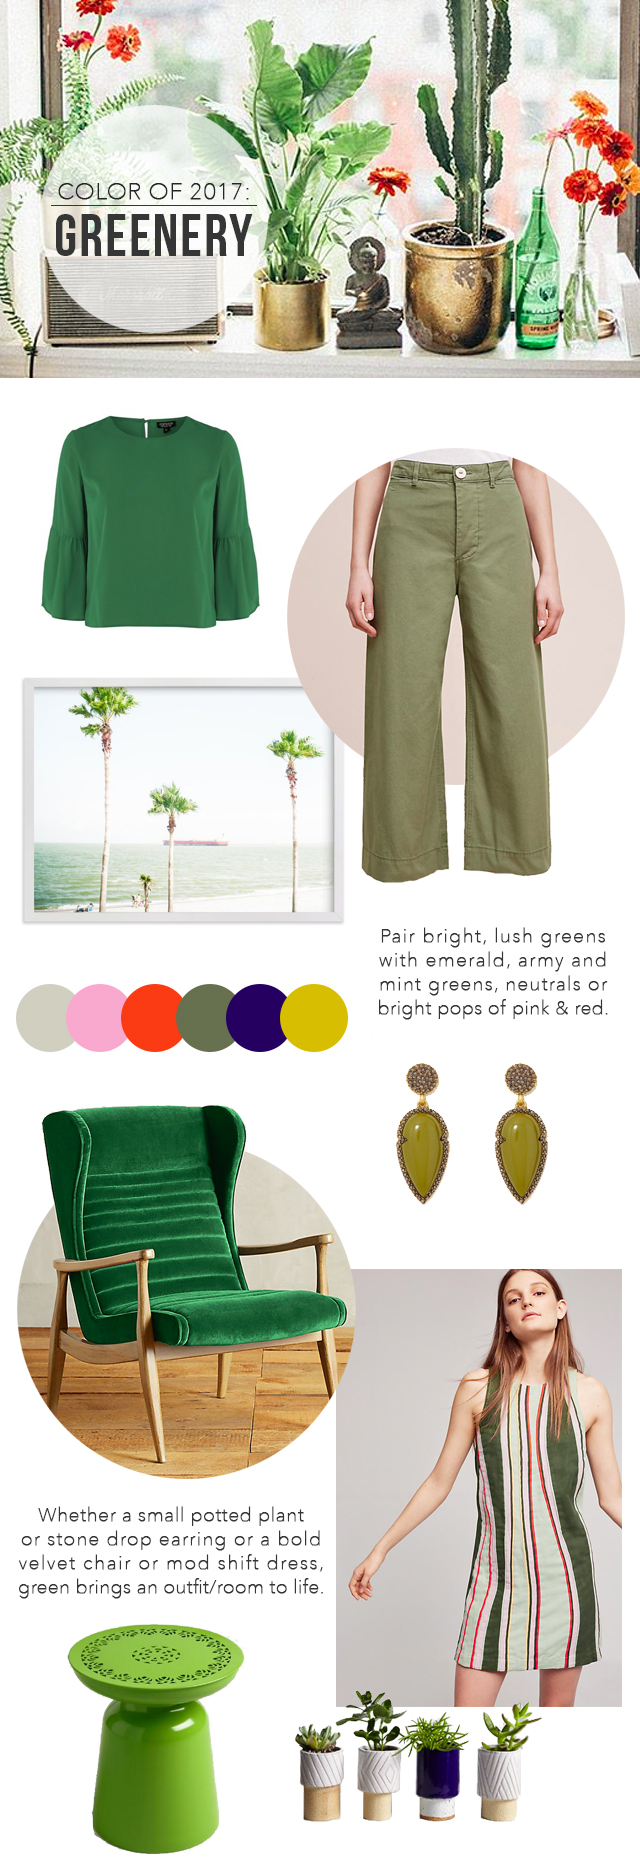 The Steele Maiden: How to wear Pantone's Color of 2017 - Greenery